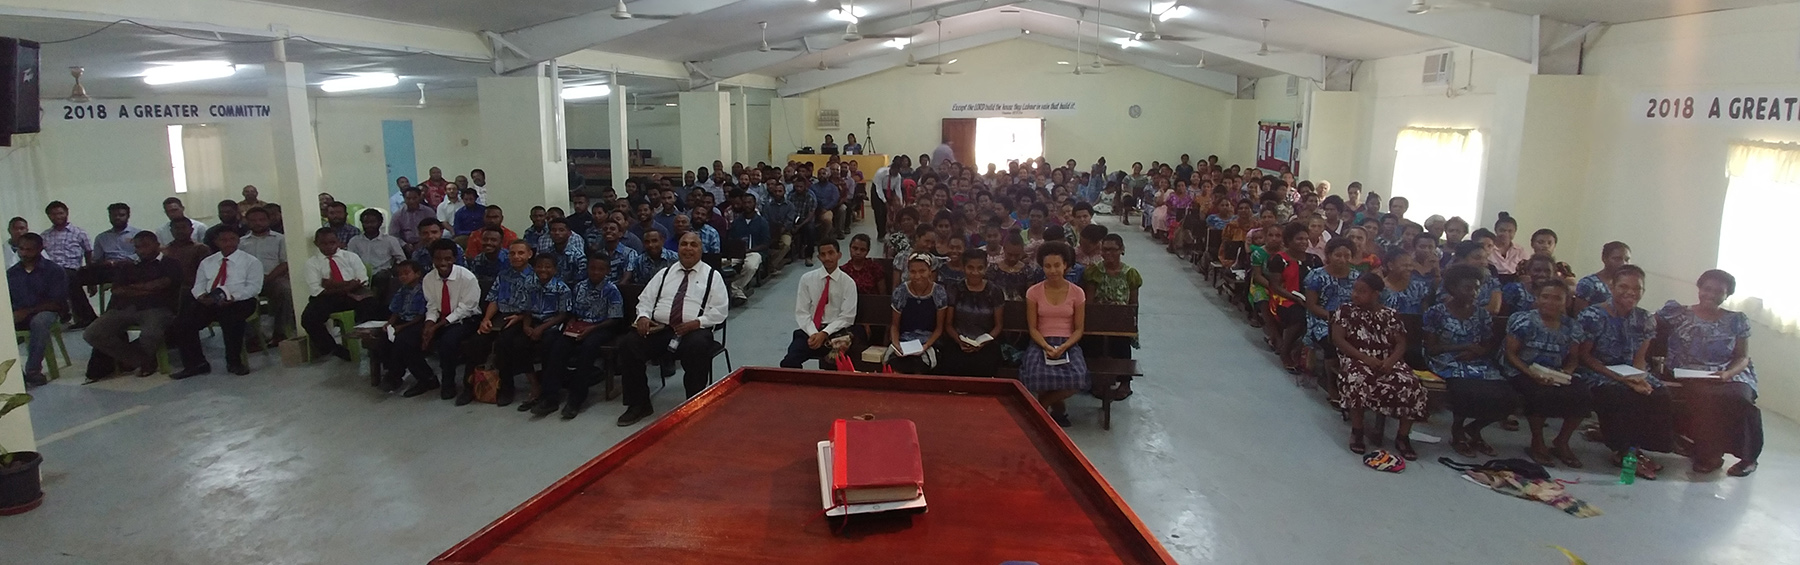 Friend Day crowd at 6 Mile Bible Baptist Church in Port Moresby, PNG